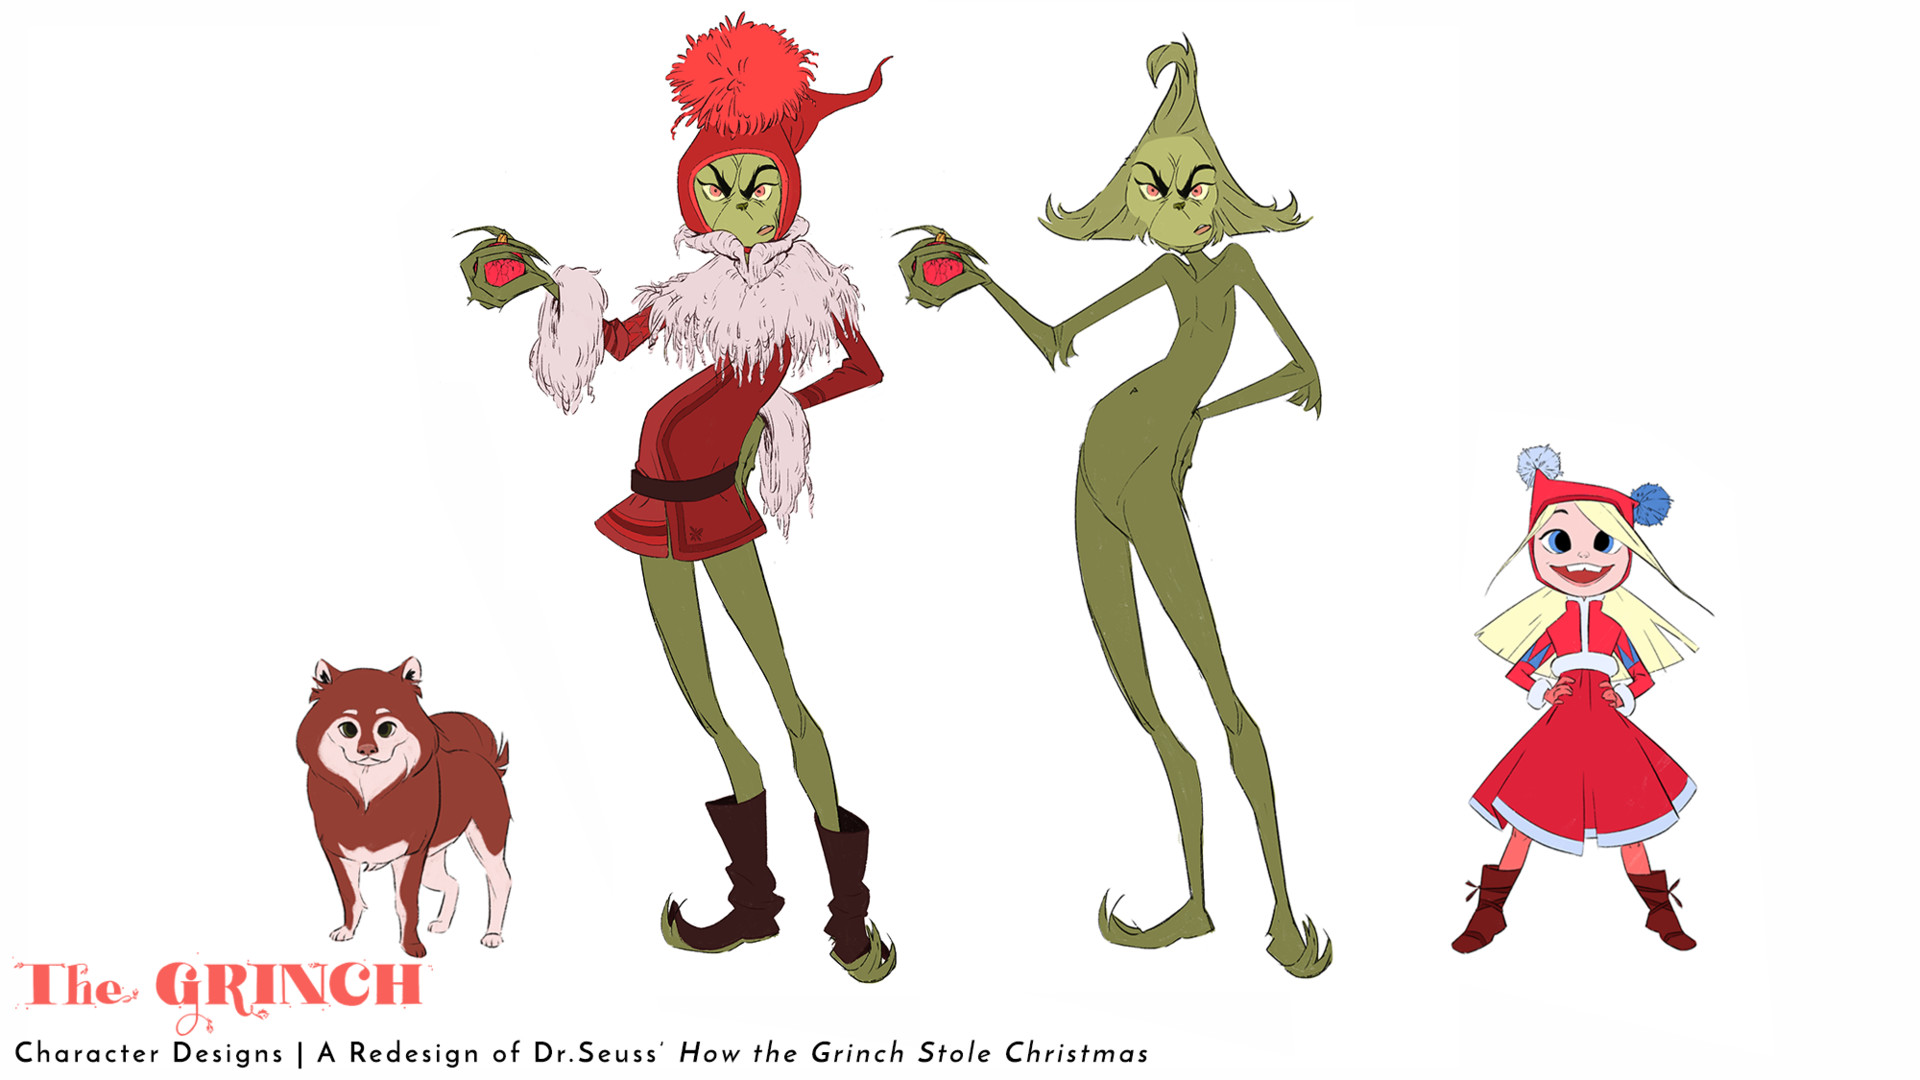 How The Grinch Stole Christmas Characters Animated.Kim Greenough How The Grinch Stole Christmas Redesign